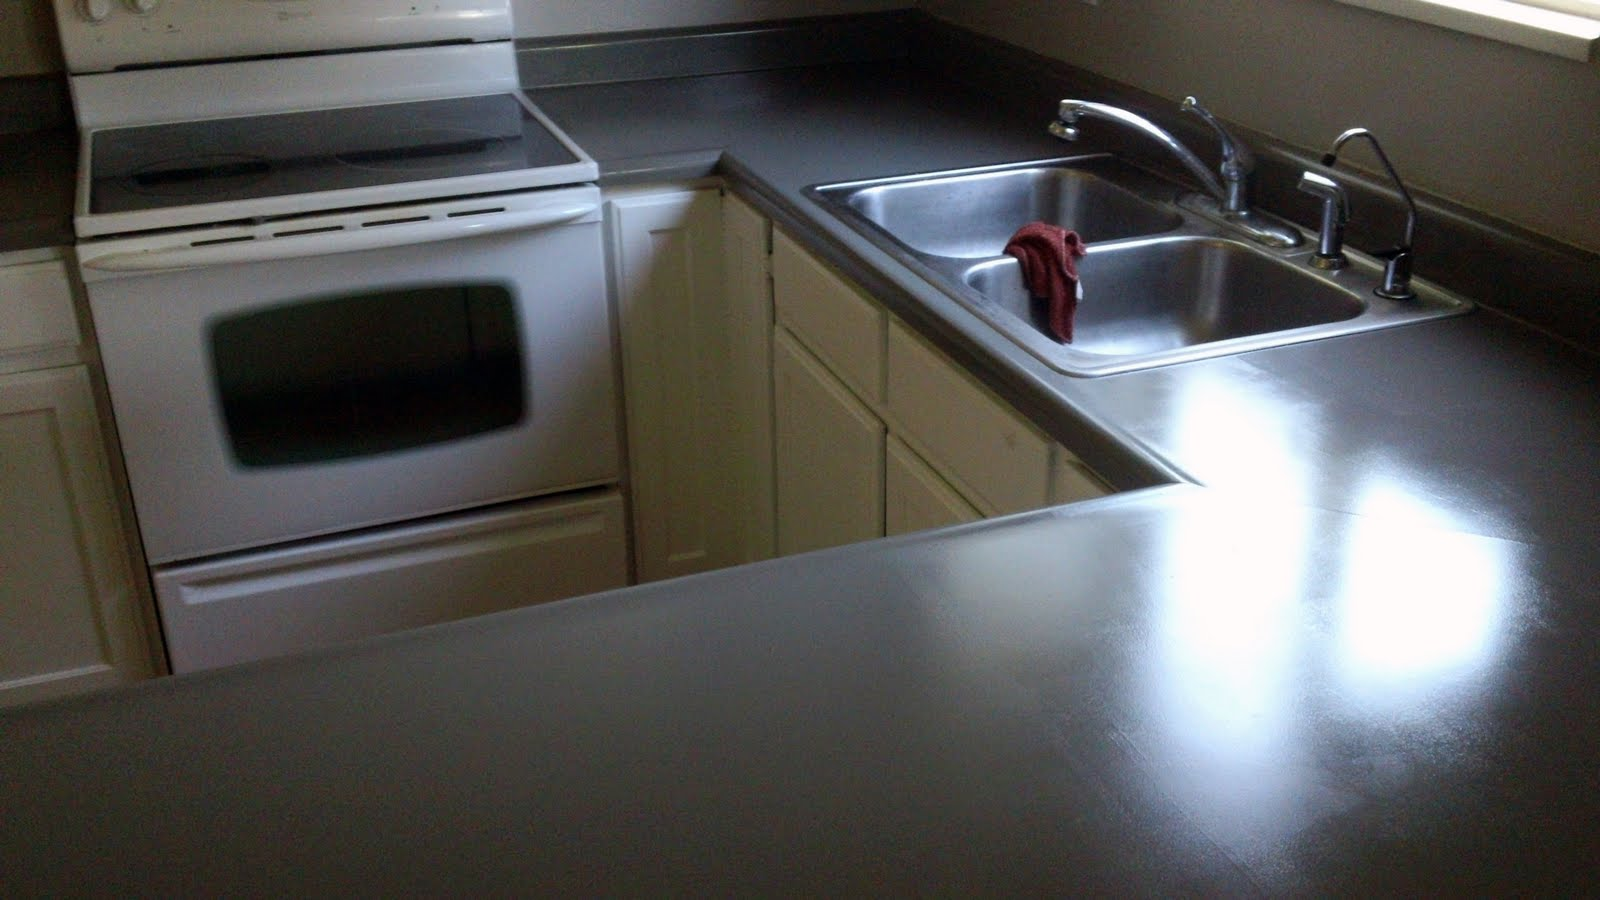 Countertop Coating : Rustoleum?s countertop paint comes in 16 colors. We went with ...